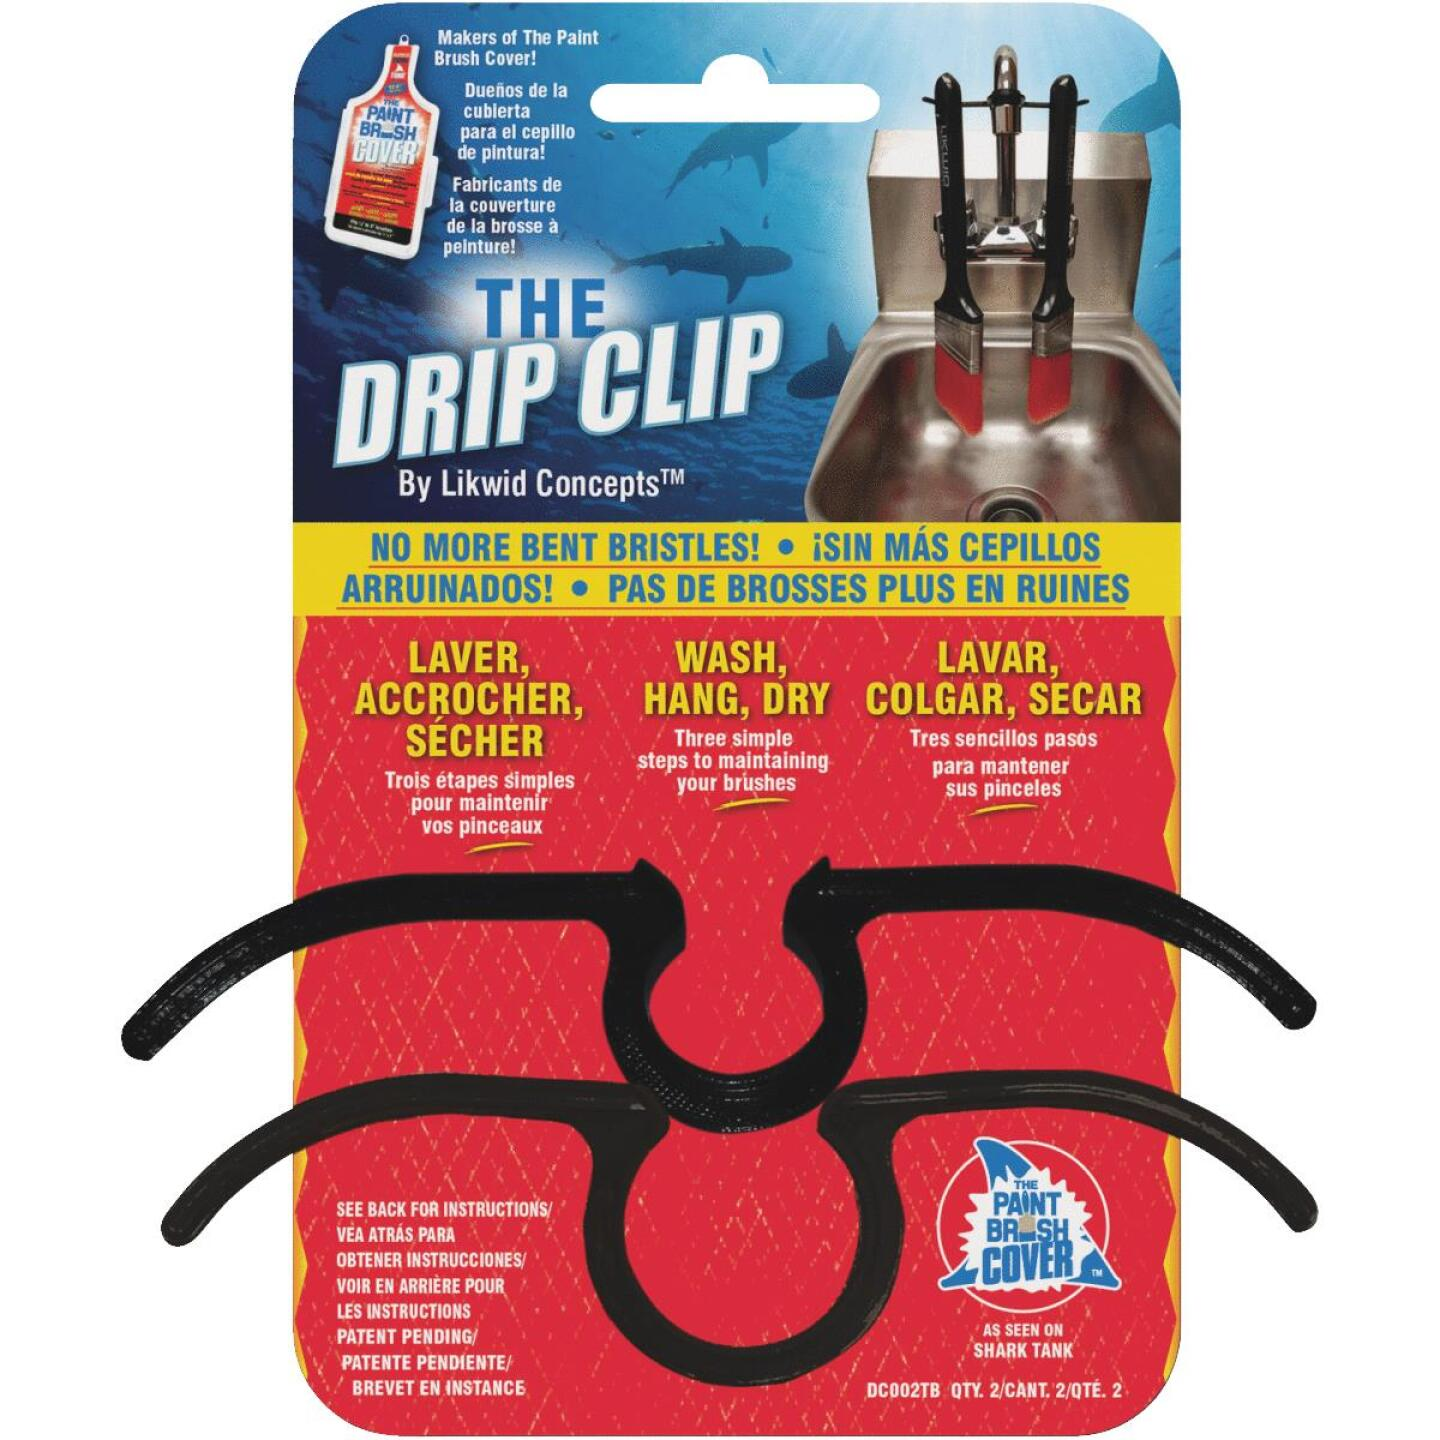 Likwid Concepts The Drip Clip Brush Clip (2 Count) Image 1